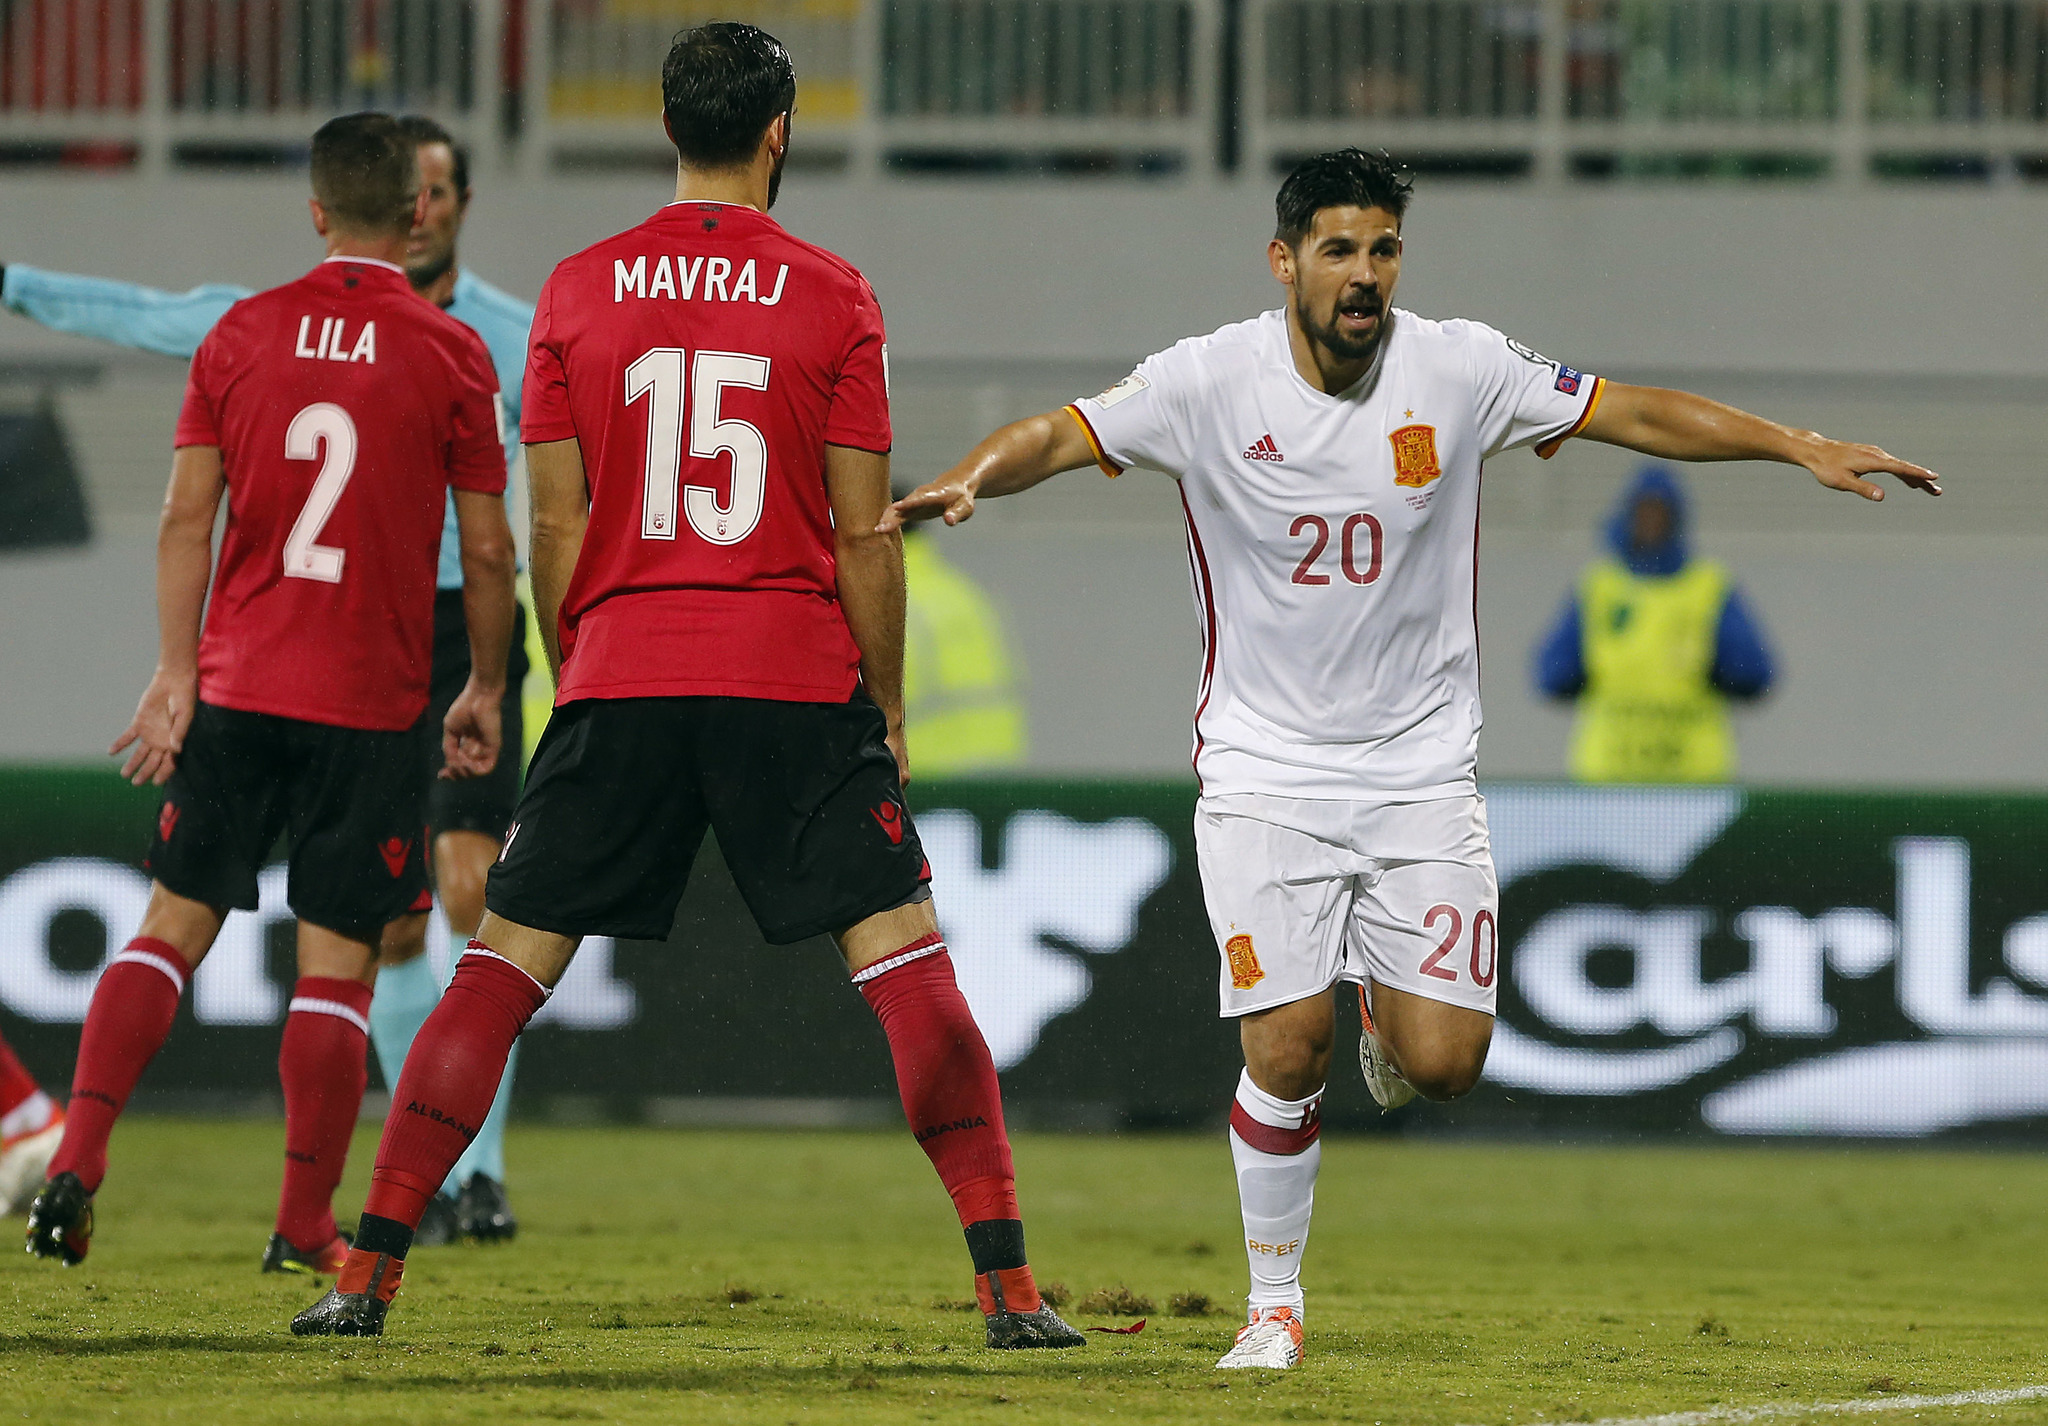 Real Betis hope to pull off plex Nolito deal